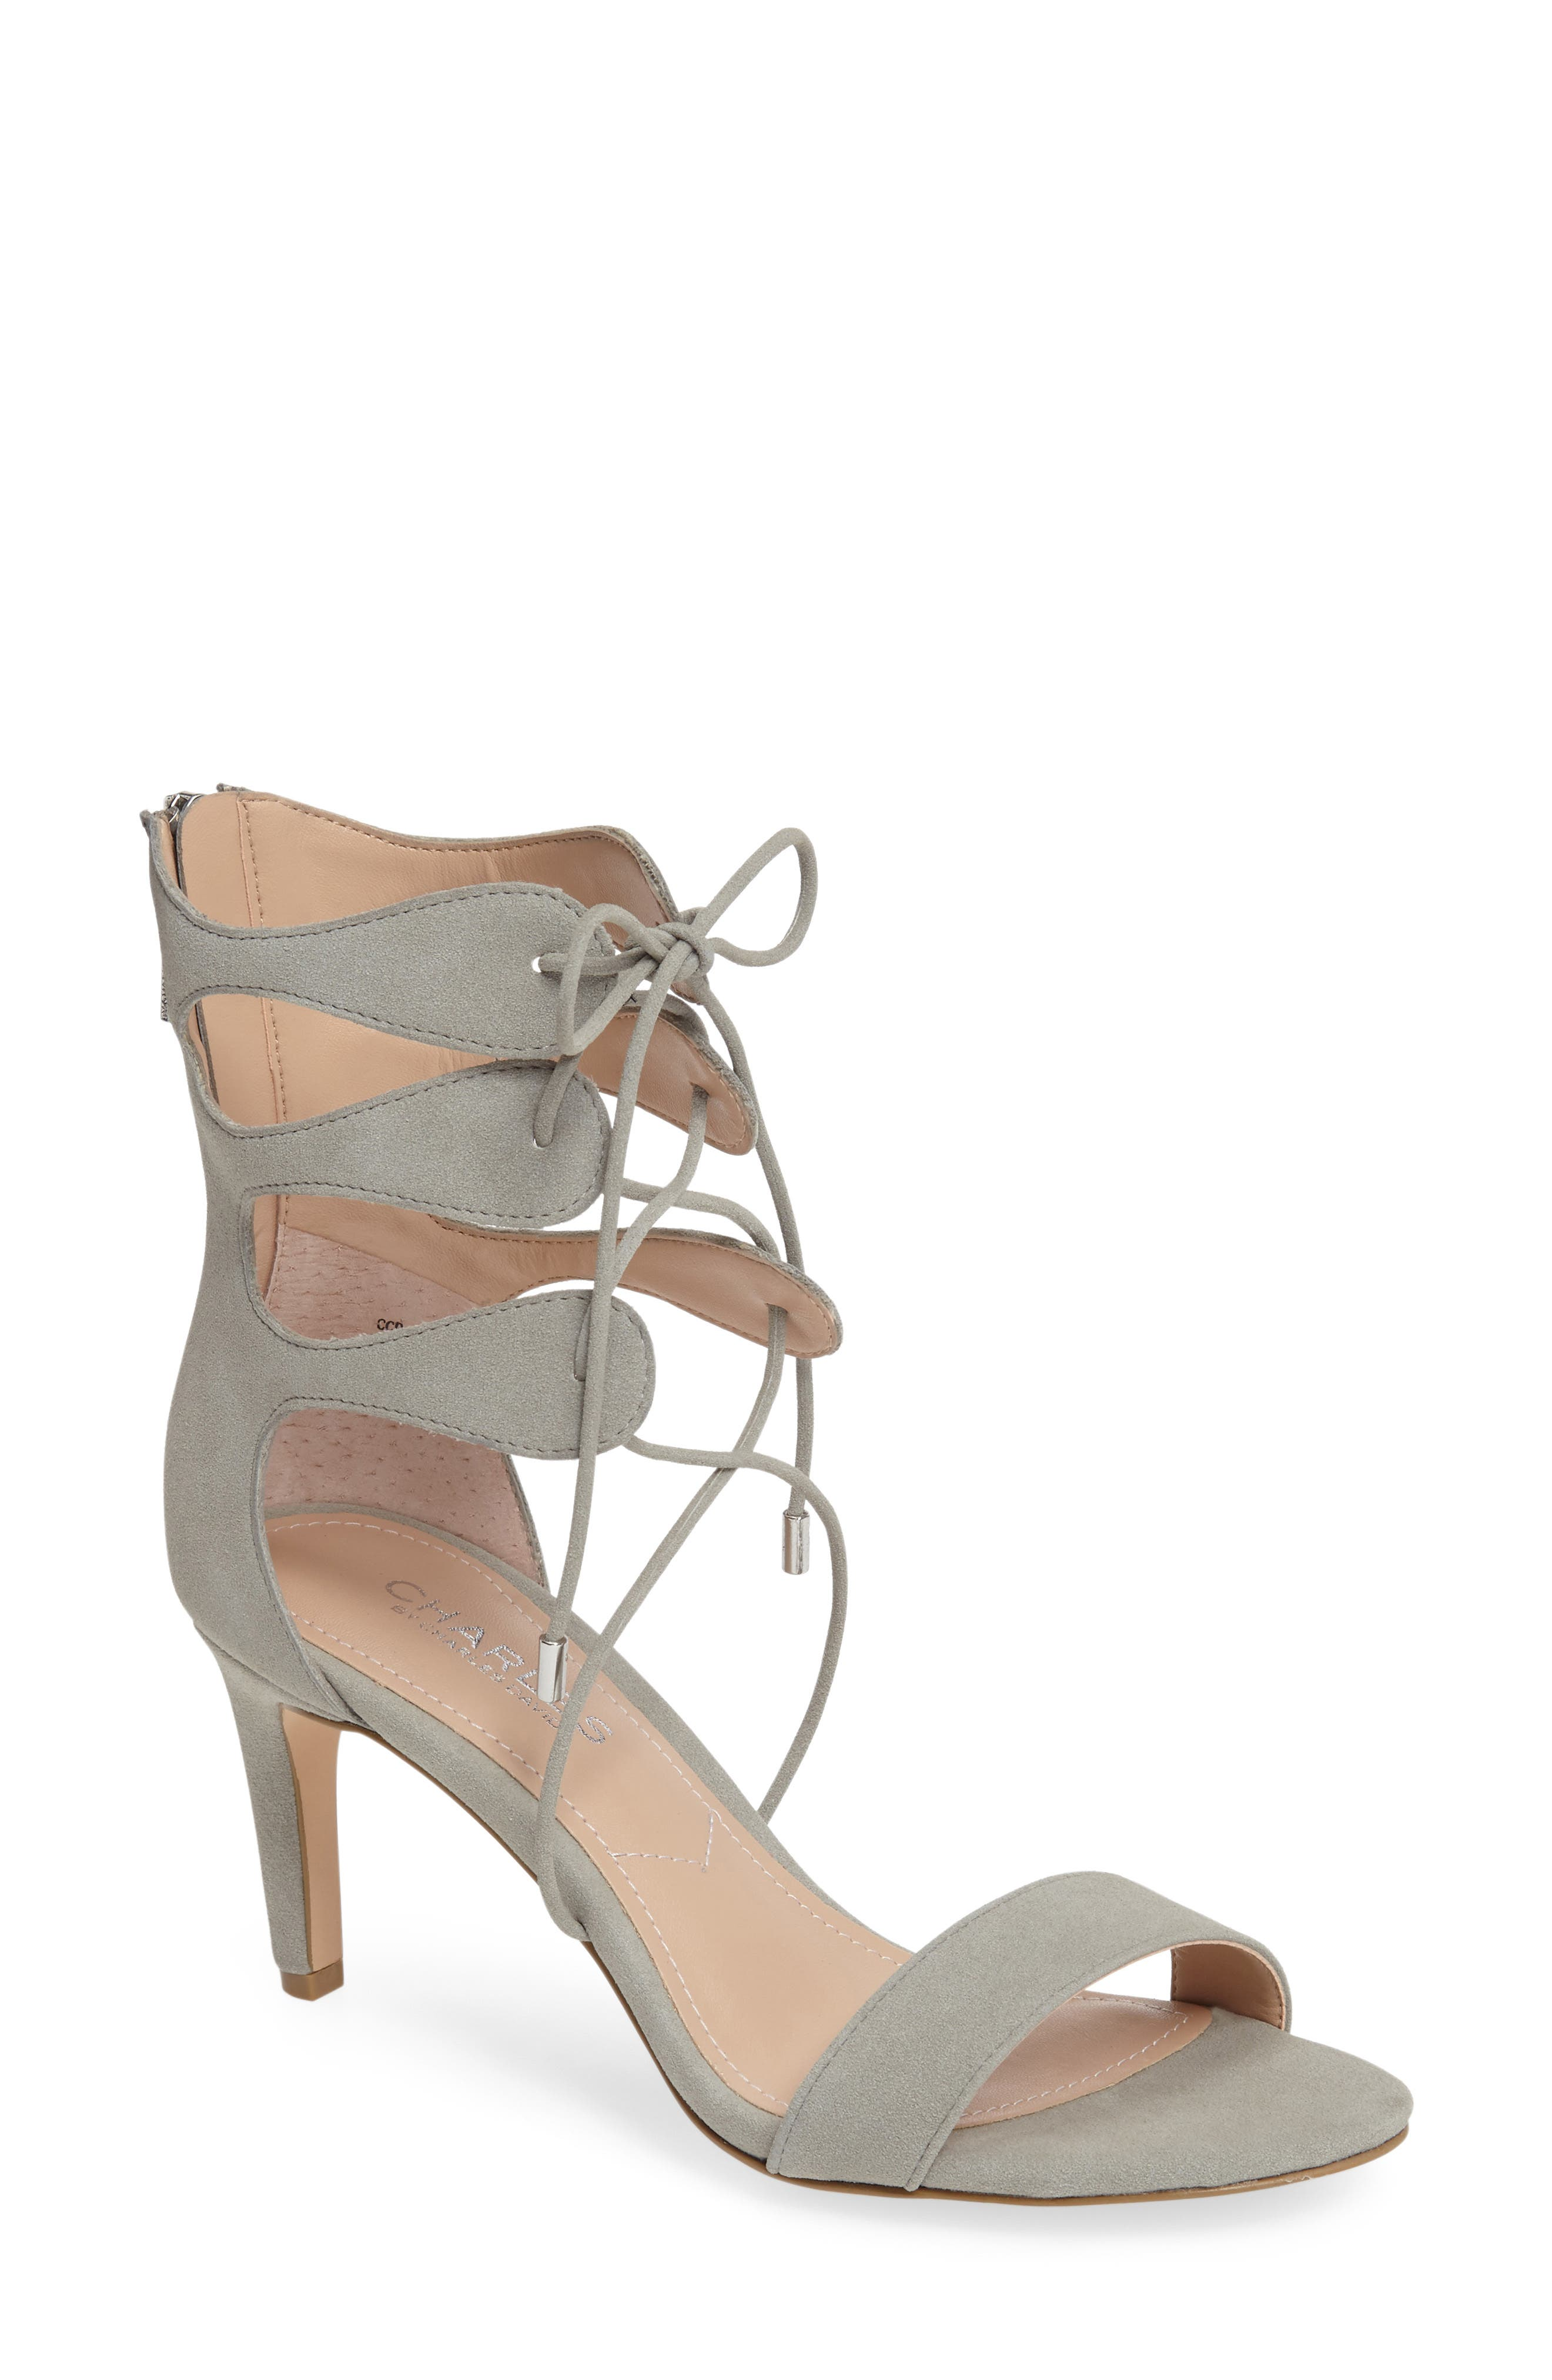 Alternate Image 1 Selected - Charles by Charles David Zone Lace-Up Sandal (Women)